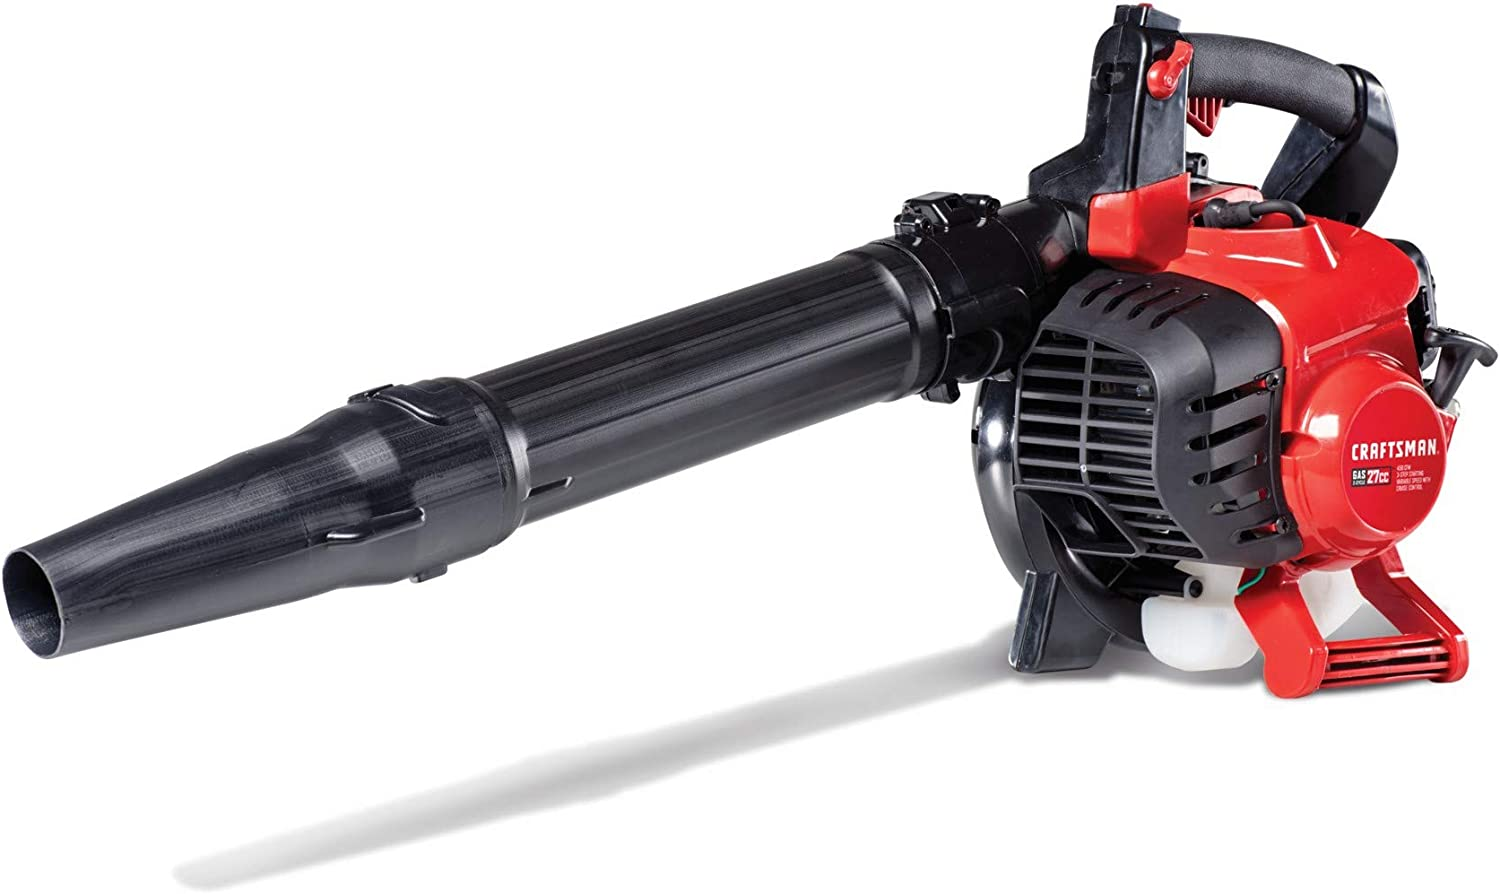 Craftsman BV245 27cc 2-Cycle Full Crank Engine Gas Powered Vac Leaf Blower